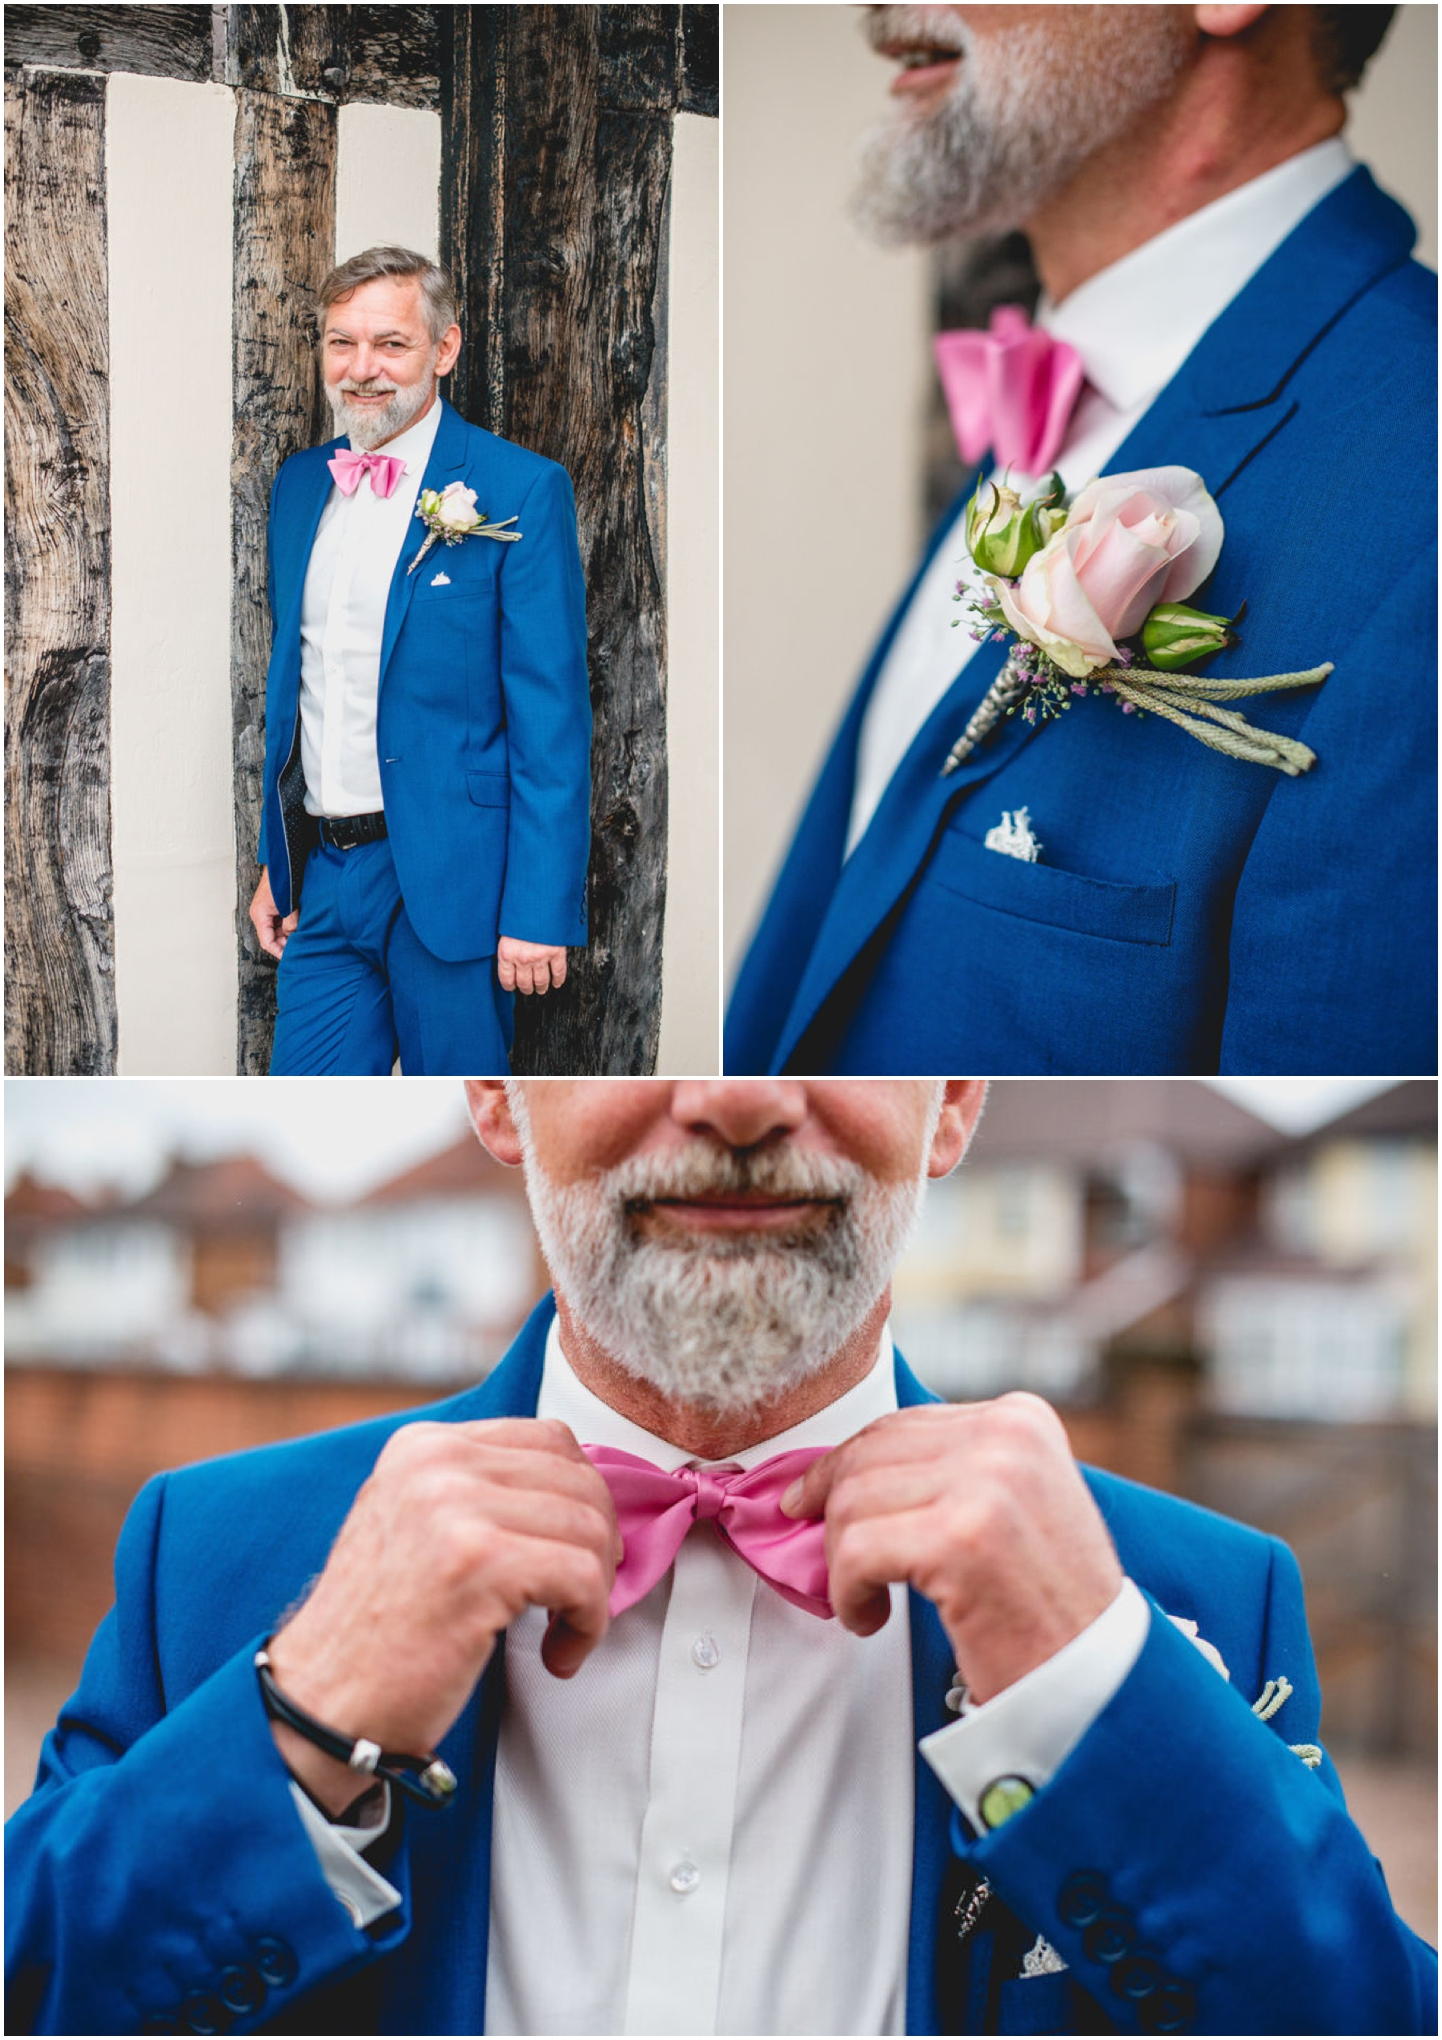 Daniella and Mark Wedding at Blakesley Hall in Birmingham, West Midlands by Lisa Carpenter Photography, Sutton Coldfield based wedding photographer, groom, blue suit, pink bow tie